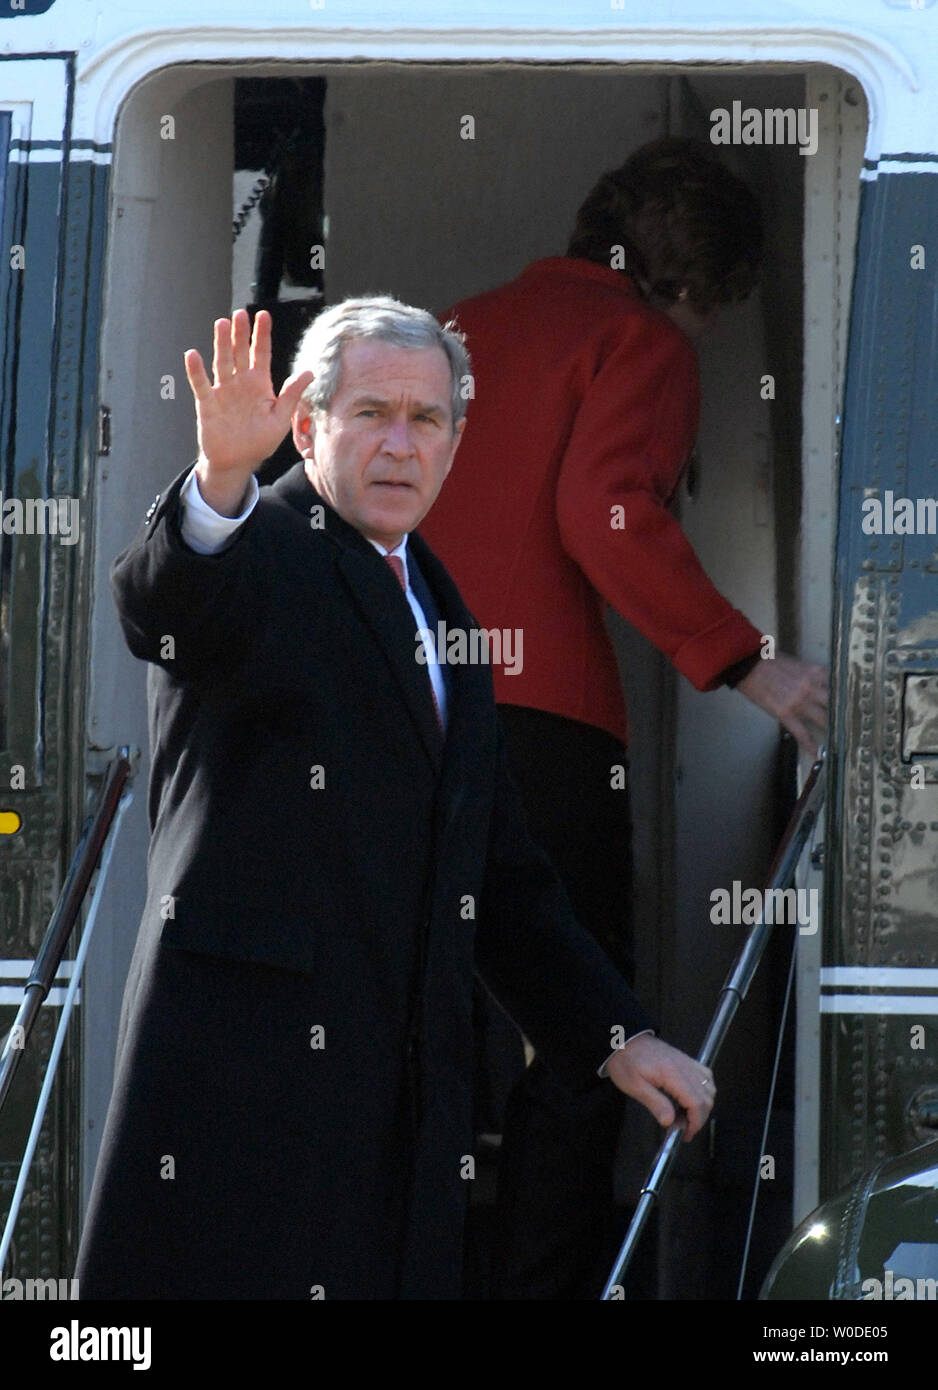 U.S. President George W. Bush waves as he and First Lady Laura Bush embark on Marine One en route to Latin America from the South Lawn of the White House in Washington on March 8, 2007.     (UPI Photo/Roger L. Wollenberg) - Stock Image